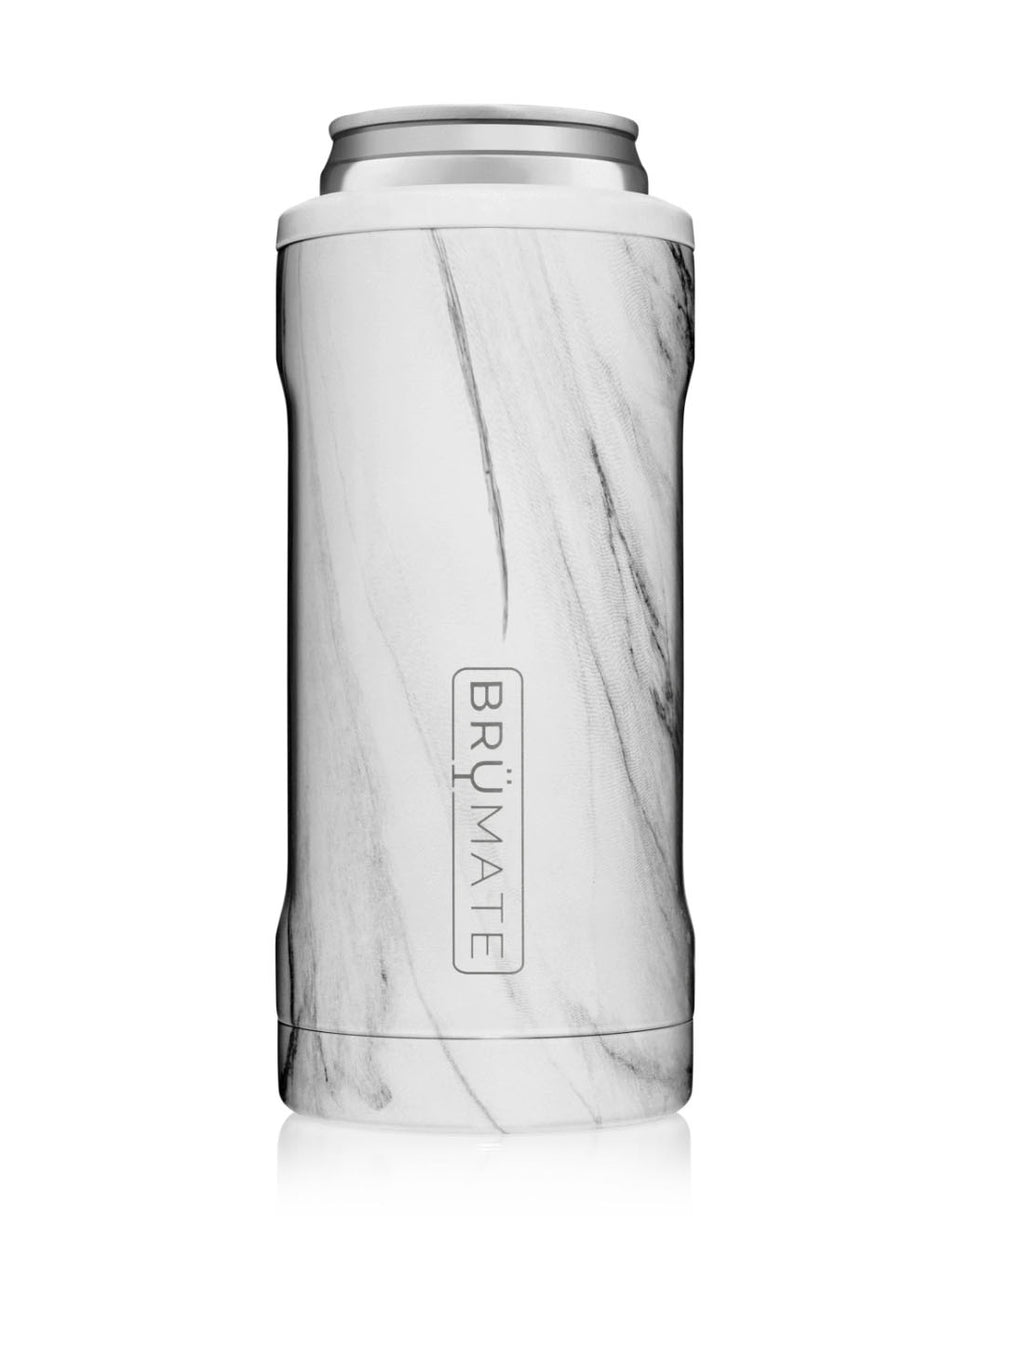 BrüMate Hopsulator Slim in Carrara